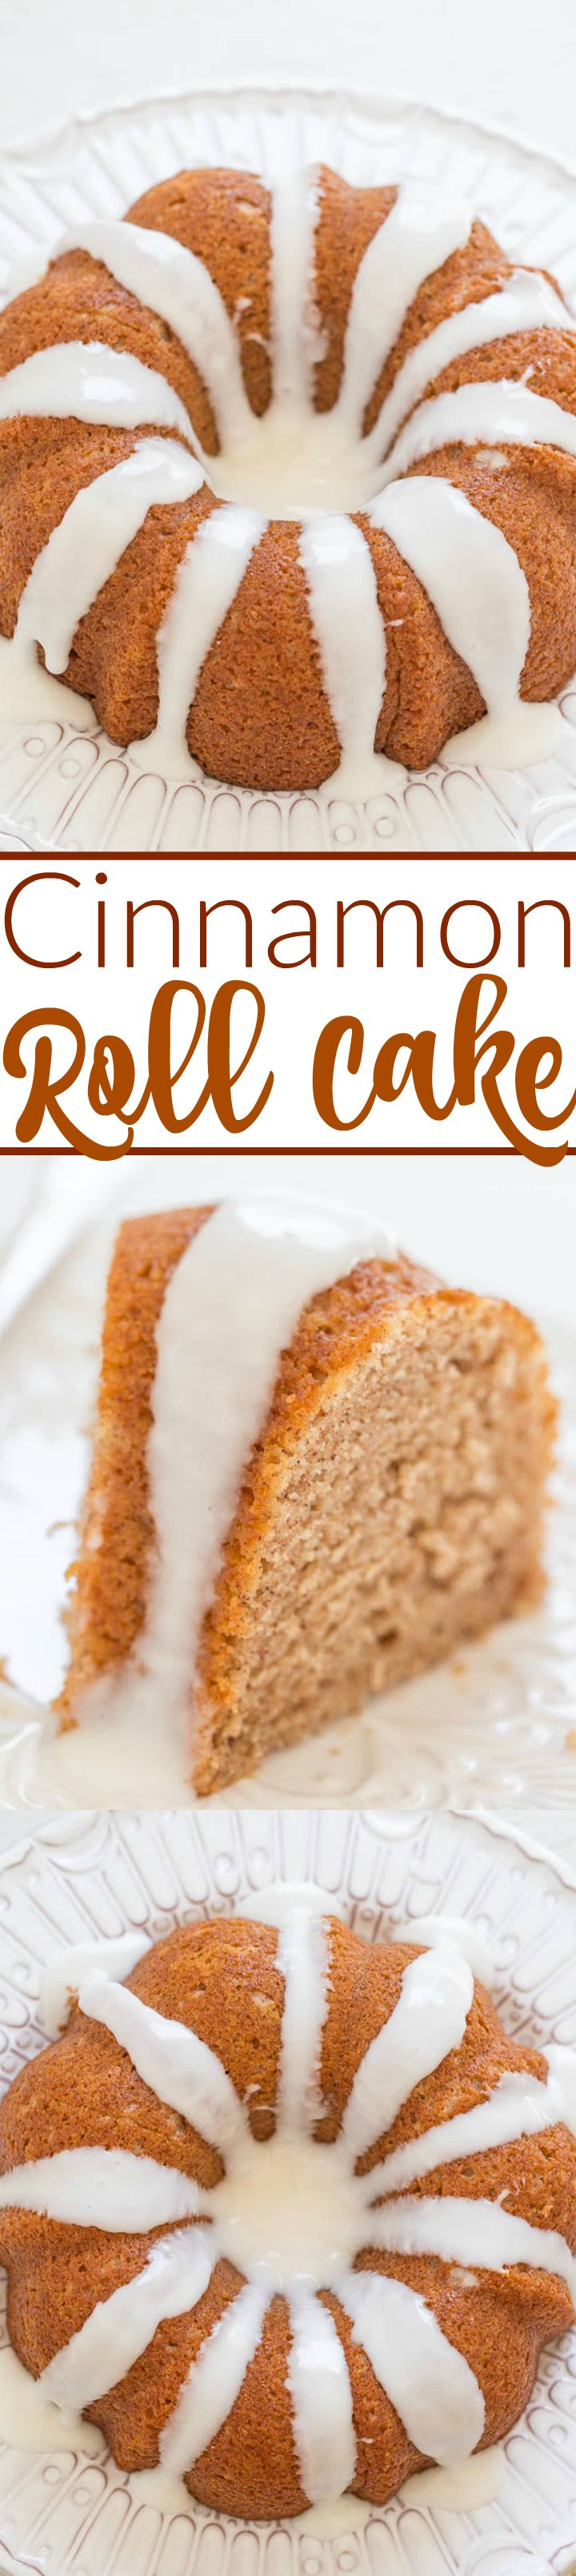 Glazed Cinnamon Roll Cake - The flavor of cinnamon rolls in a soft, tender, EASY cake!! One bowl, no mixer, and you're going to love the tangy-sweet GLAZE!!